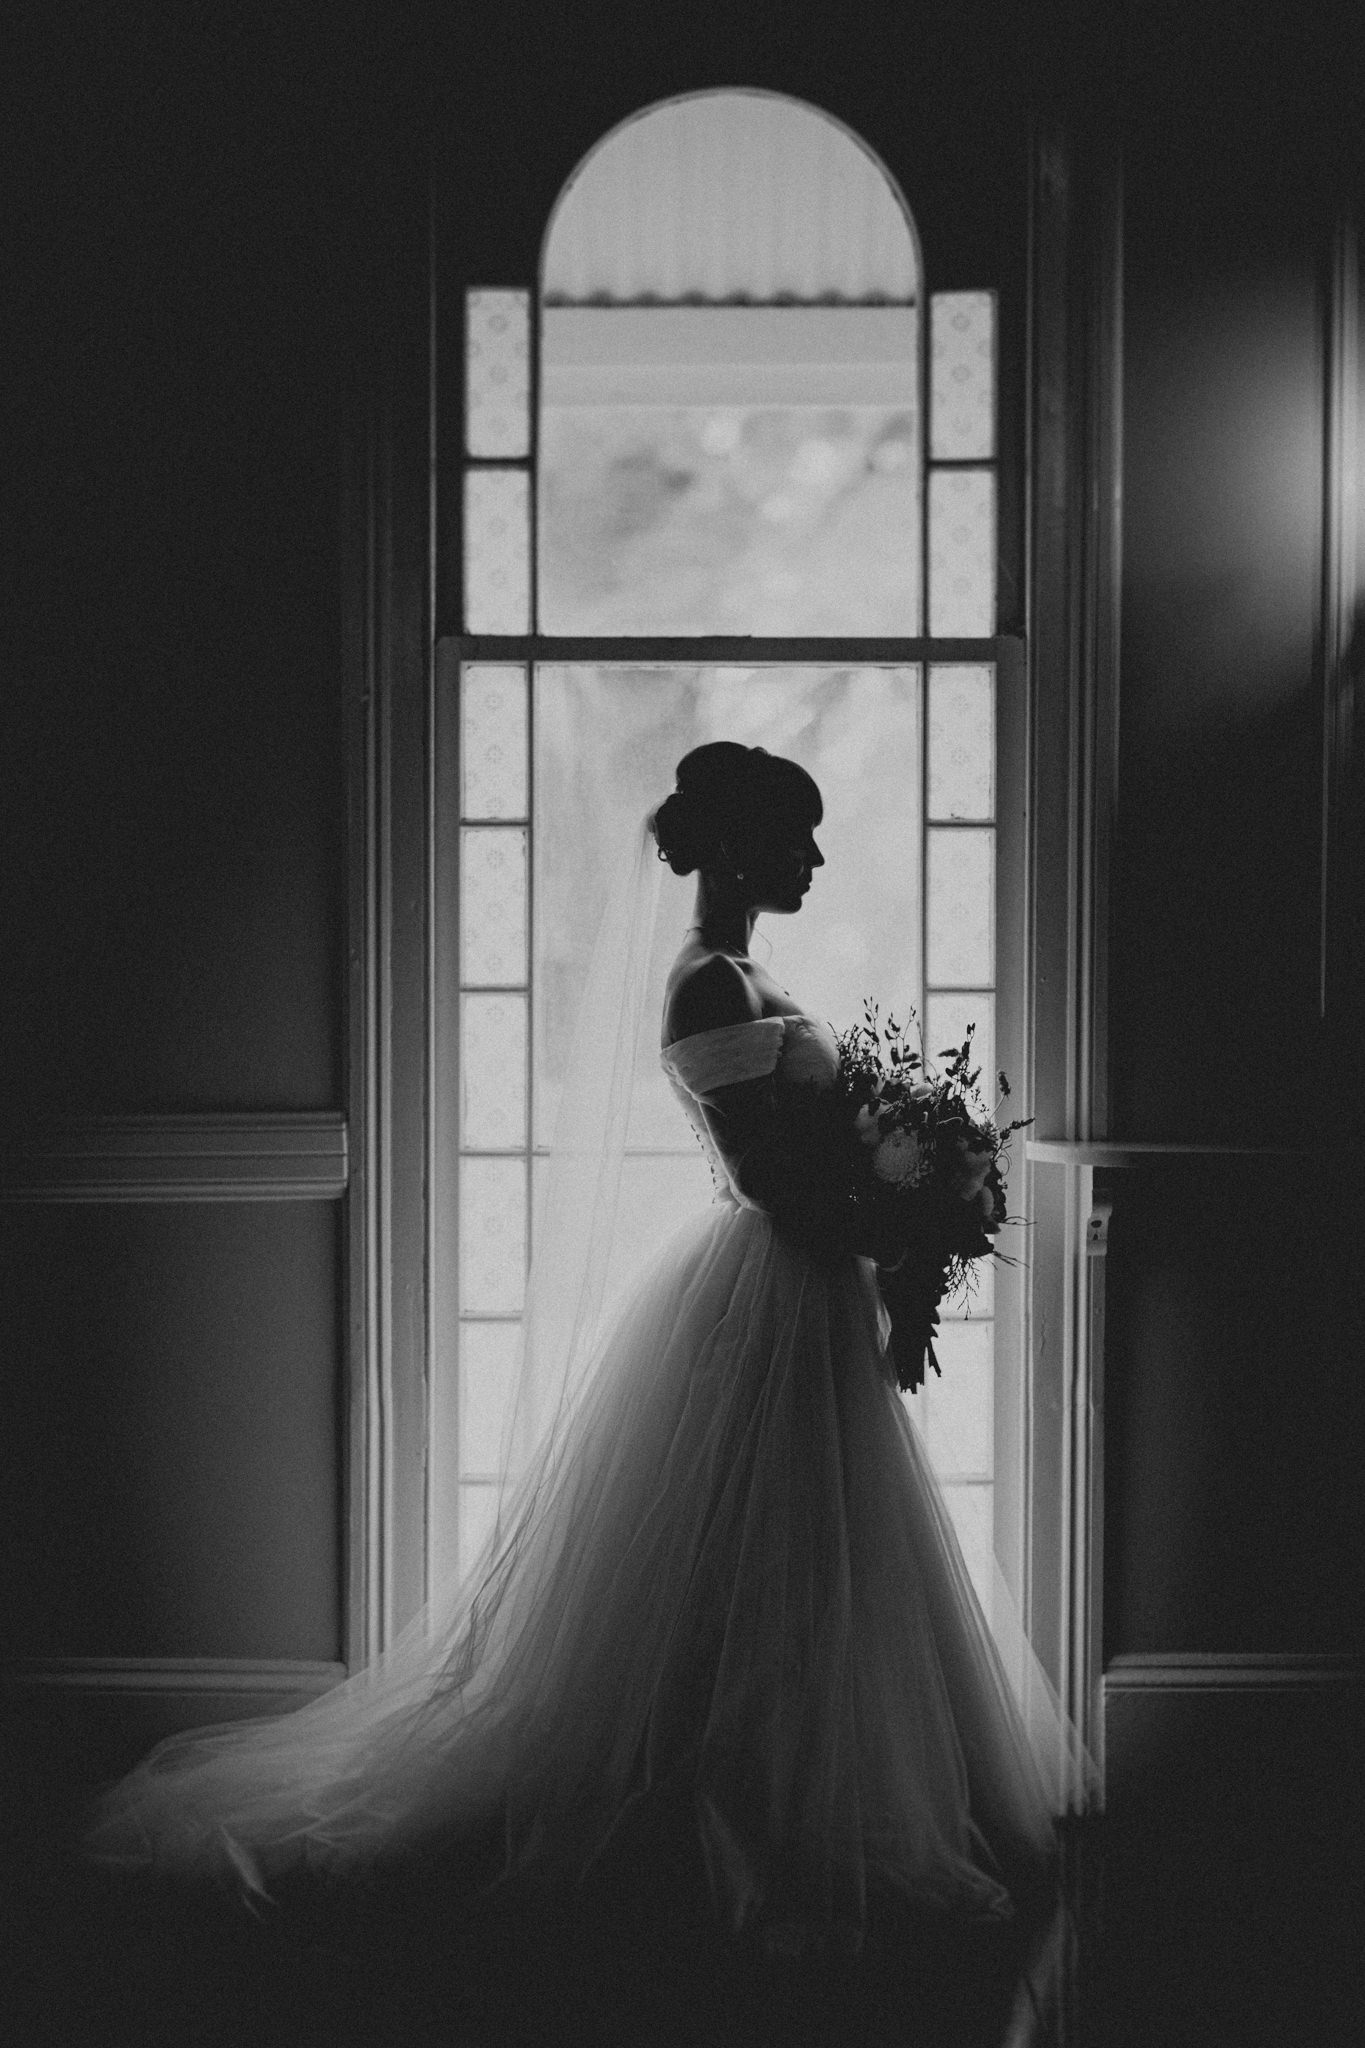 A silhouette of a bride in her wedding dress and bouquet in front of a large window